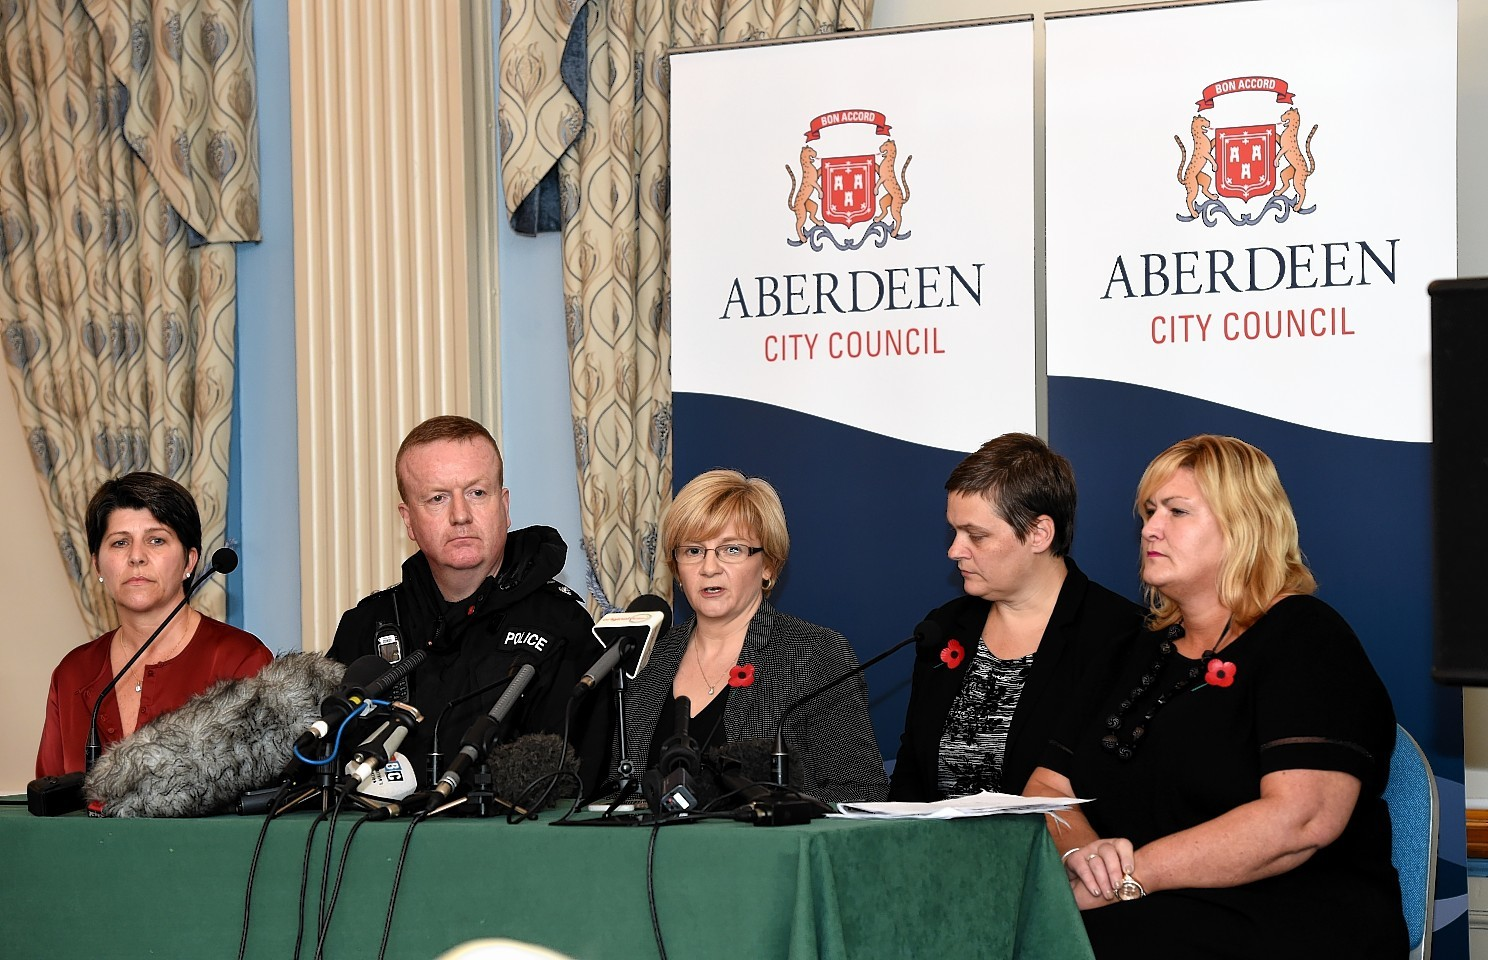 Deputy council leader, Marie Boulton, Chief Superintendent, Adrian Watson, Aberdeen City Council Leader, Jenny Laing, Chief Executive, Angela Scott and Director of Education Children's Services, Gayle Gorman, hold a press conference at the Beach Ballroom